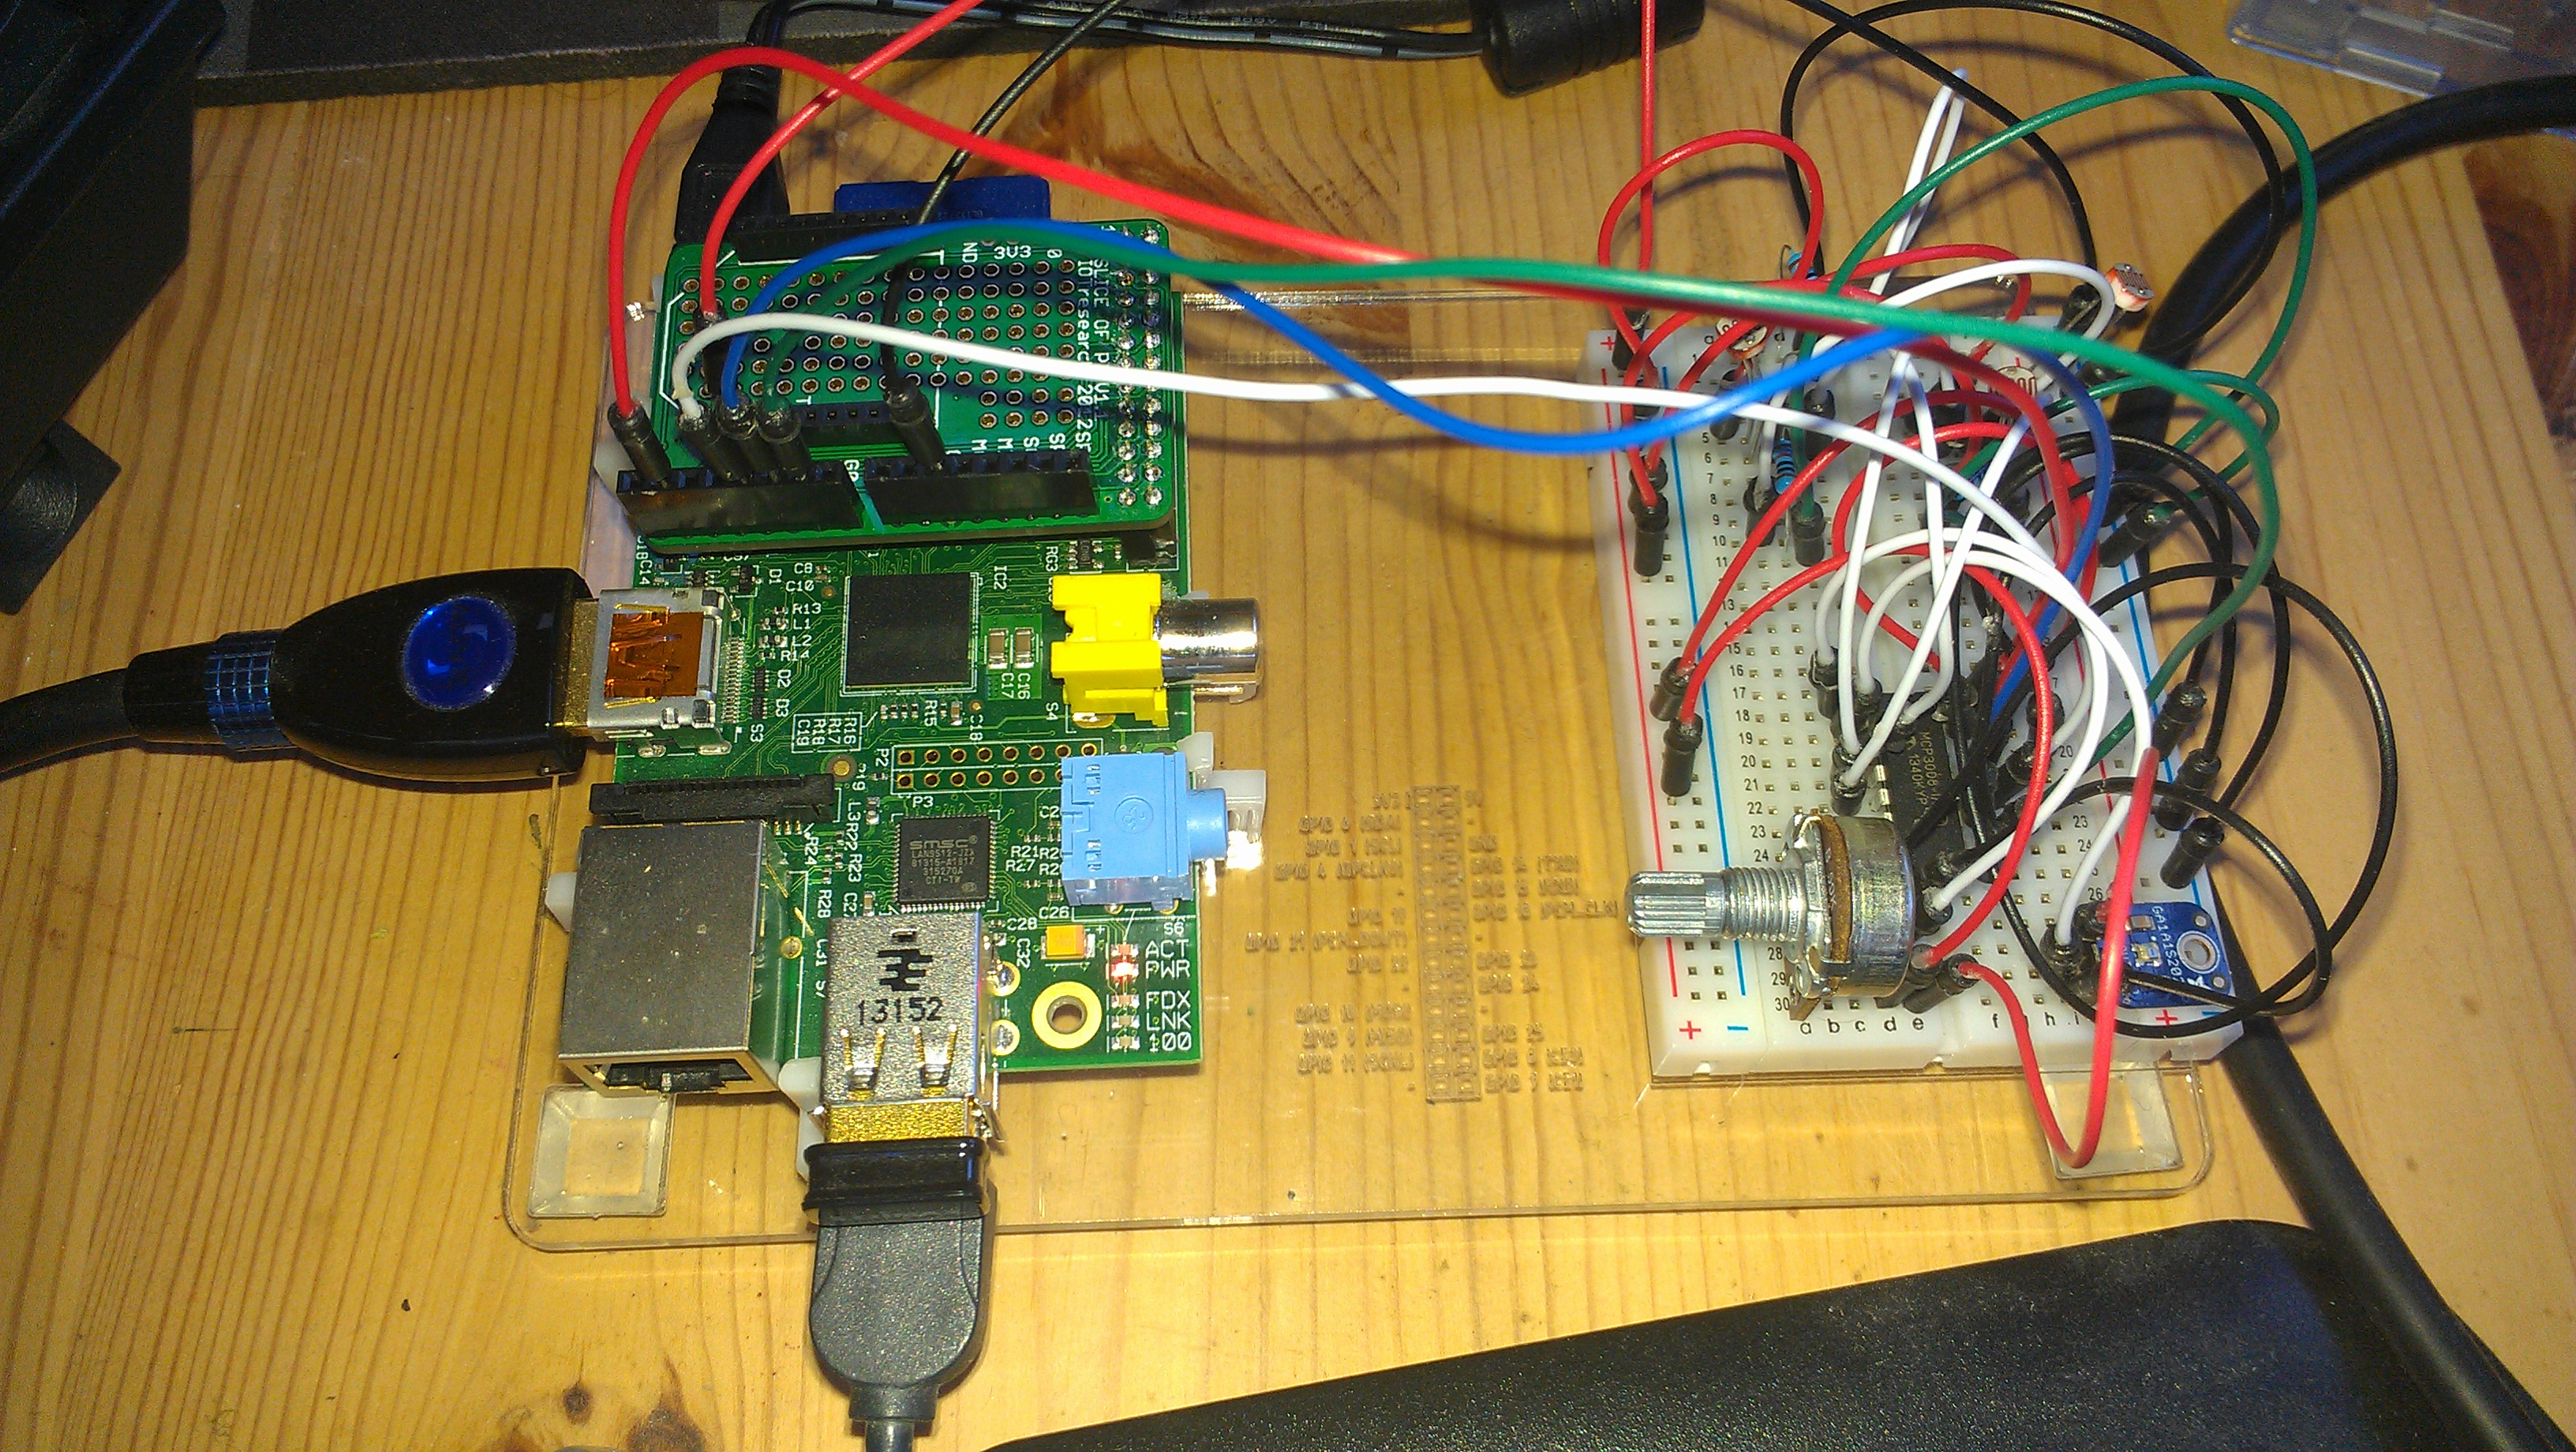 Connect and read an Analog to Digital Converter